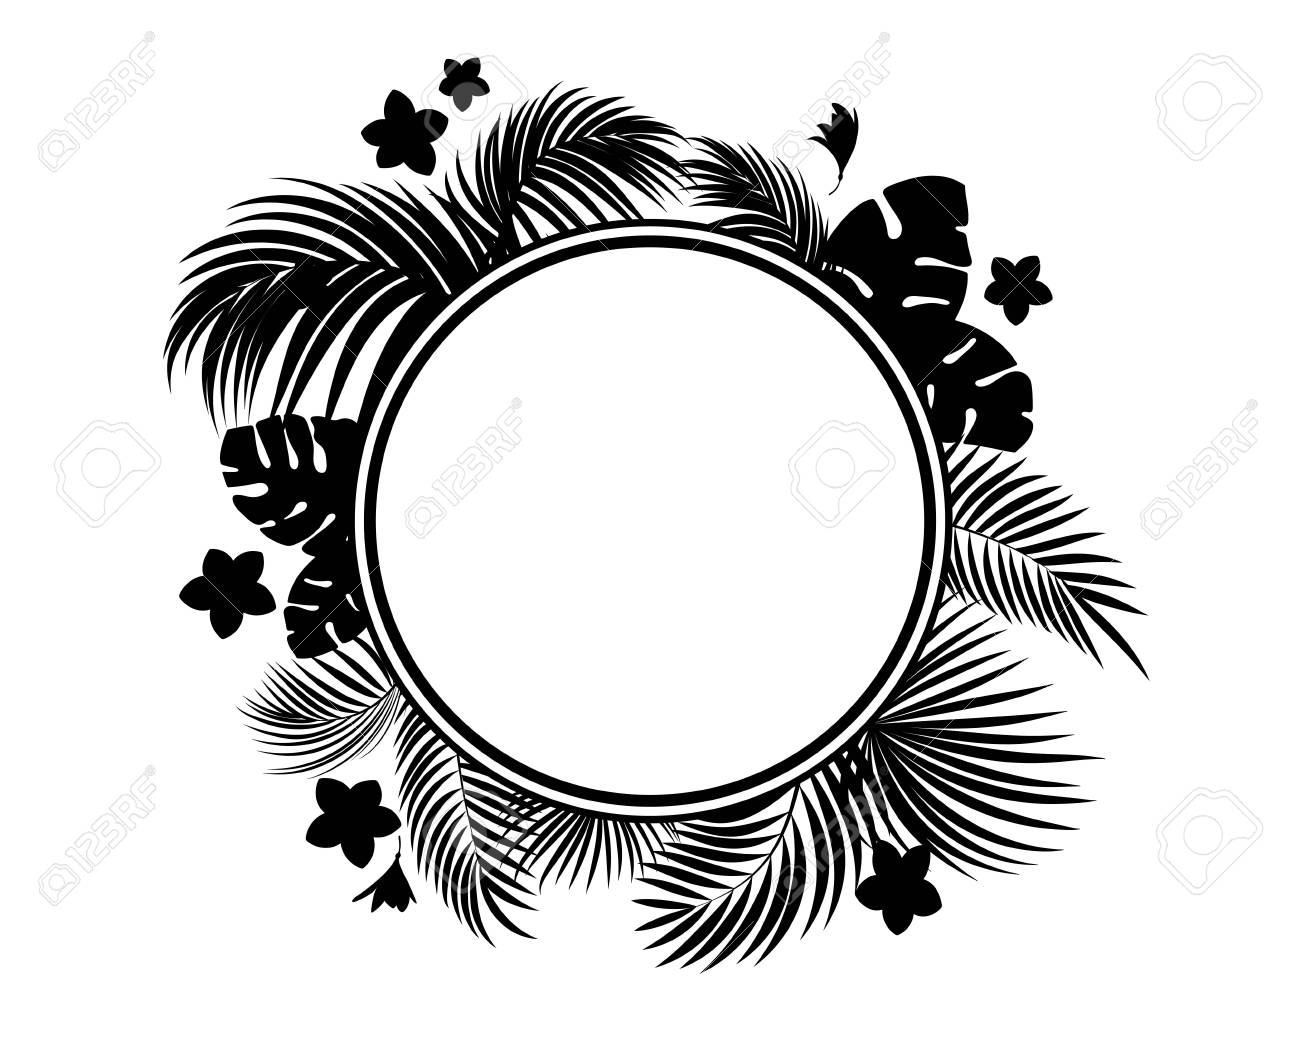 Tropical Leaves And Flowers Black Silhouette Circle Frame Isolation Royalty Free Cliparts Vectors And Stock Illustration Image 112948139 Leaves design resources · high quality aesthetic backgrounds and wallpapers, vector illustrations, photos, pngs, mockups, templates and art. tropical leaves and flowers black silhouette circle frame isolation